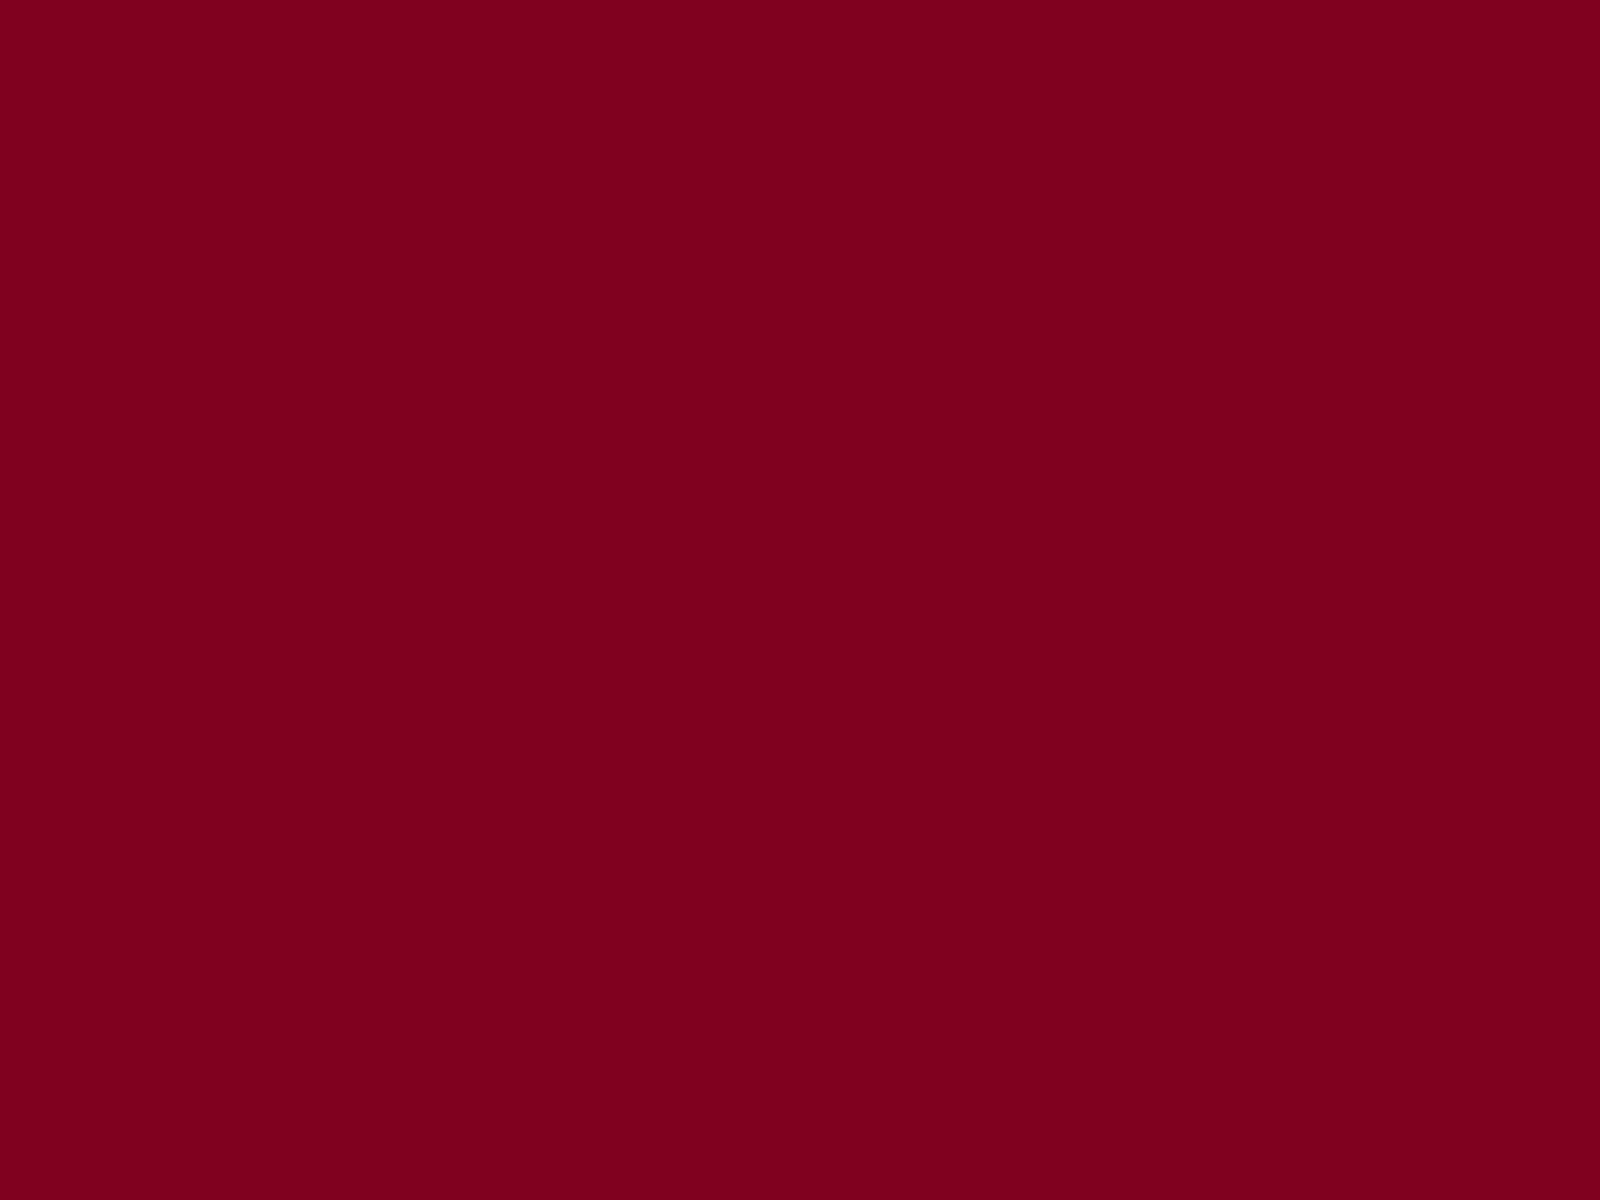 1600x1200 Burgundy Solid Color Background